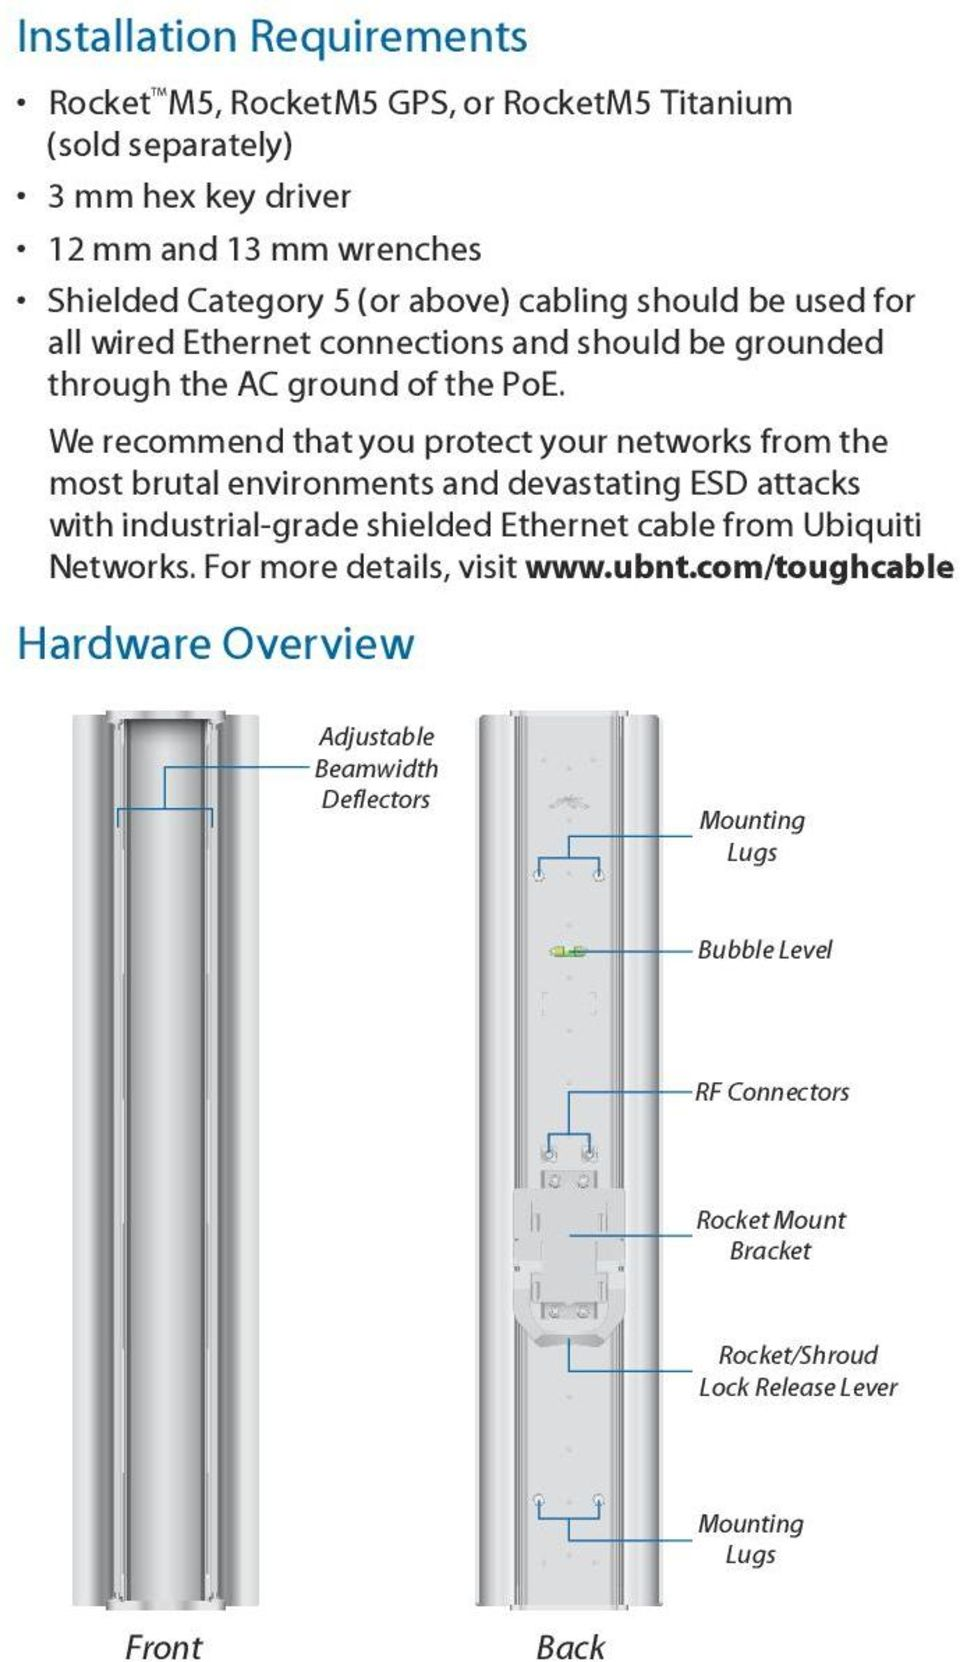 We recommend that you protect your networks from the most brutal environments and devastating ESD attacks with industrial grade shielded Ethernet cable from Ubiquiti